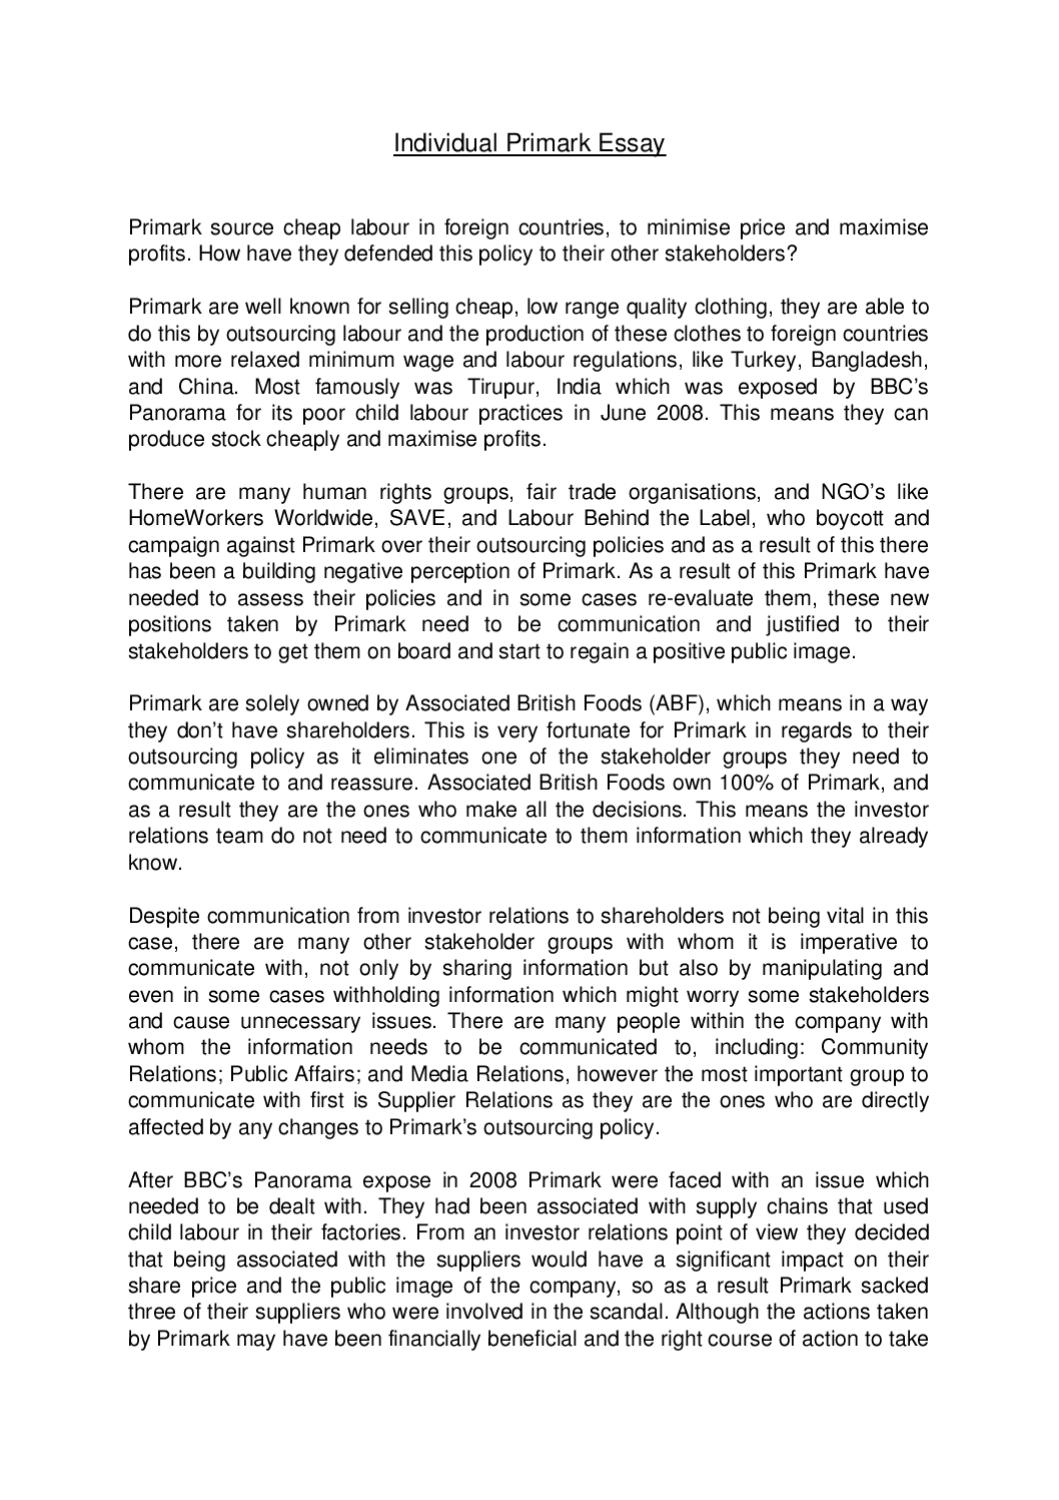 ethics essay primark essay This assignment will reexamine the literature on business ethics within the context of a peculiar administration - primark to heighten our apprehension of the constructs of 'values ' and 'morals our survey defines and evaluates moralss in a concern context  at the same time throwing visible radiation on issues such as disposable manner and ethical sourcing.